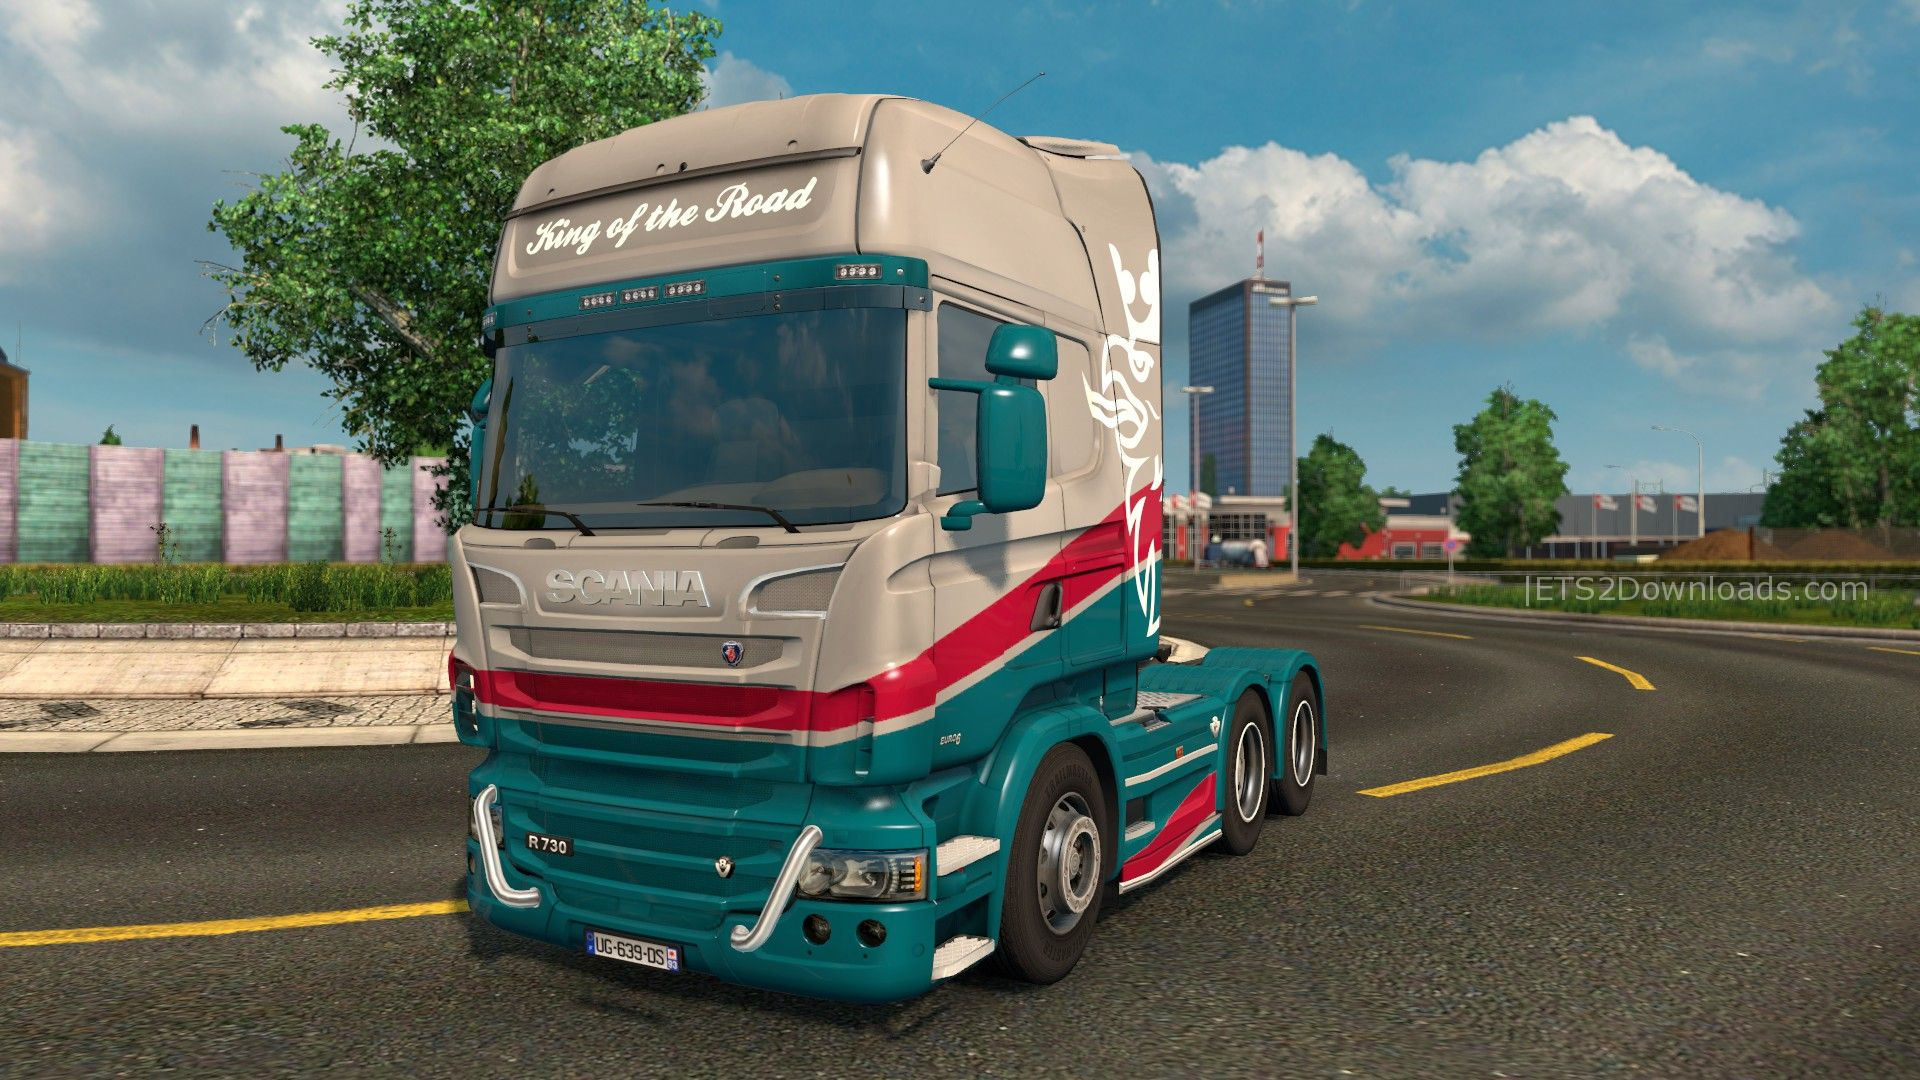 scania-r-series-modified-by-pete379jp-12